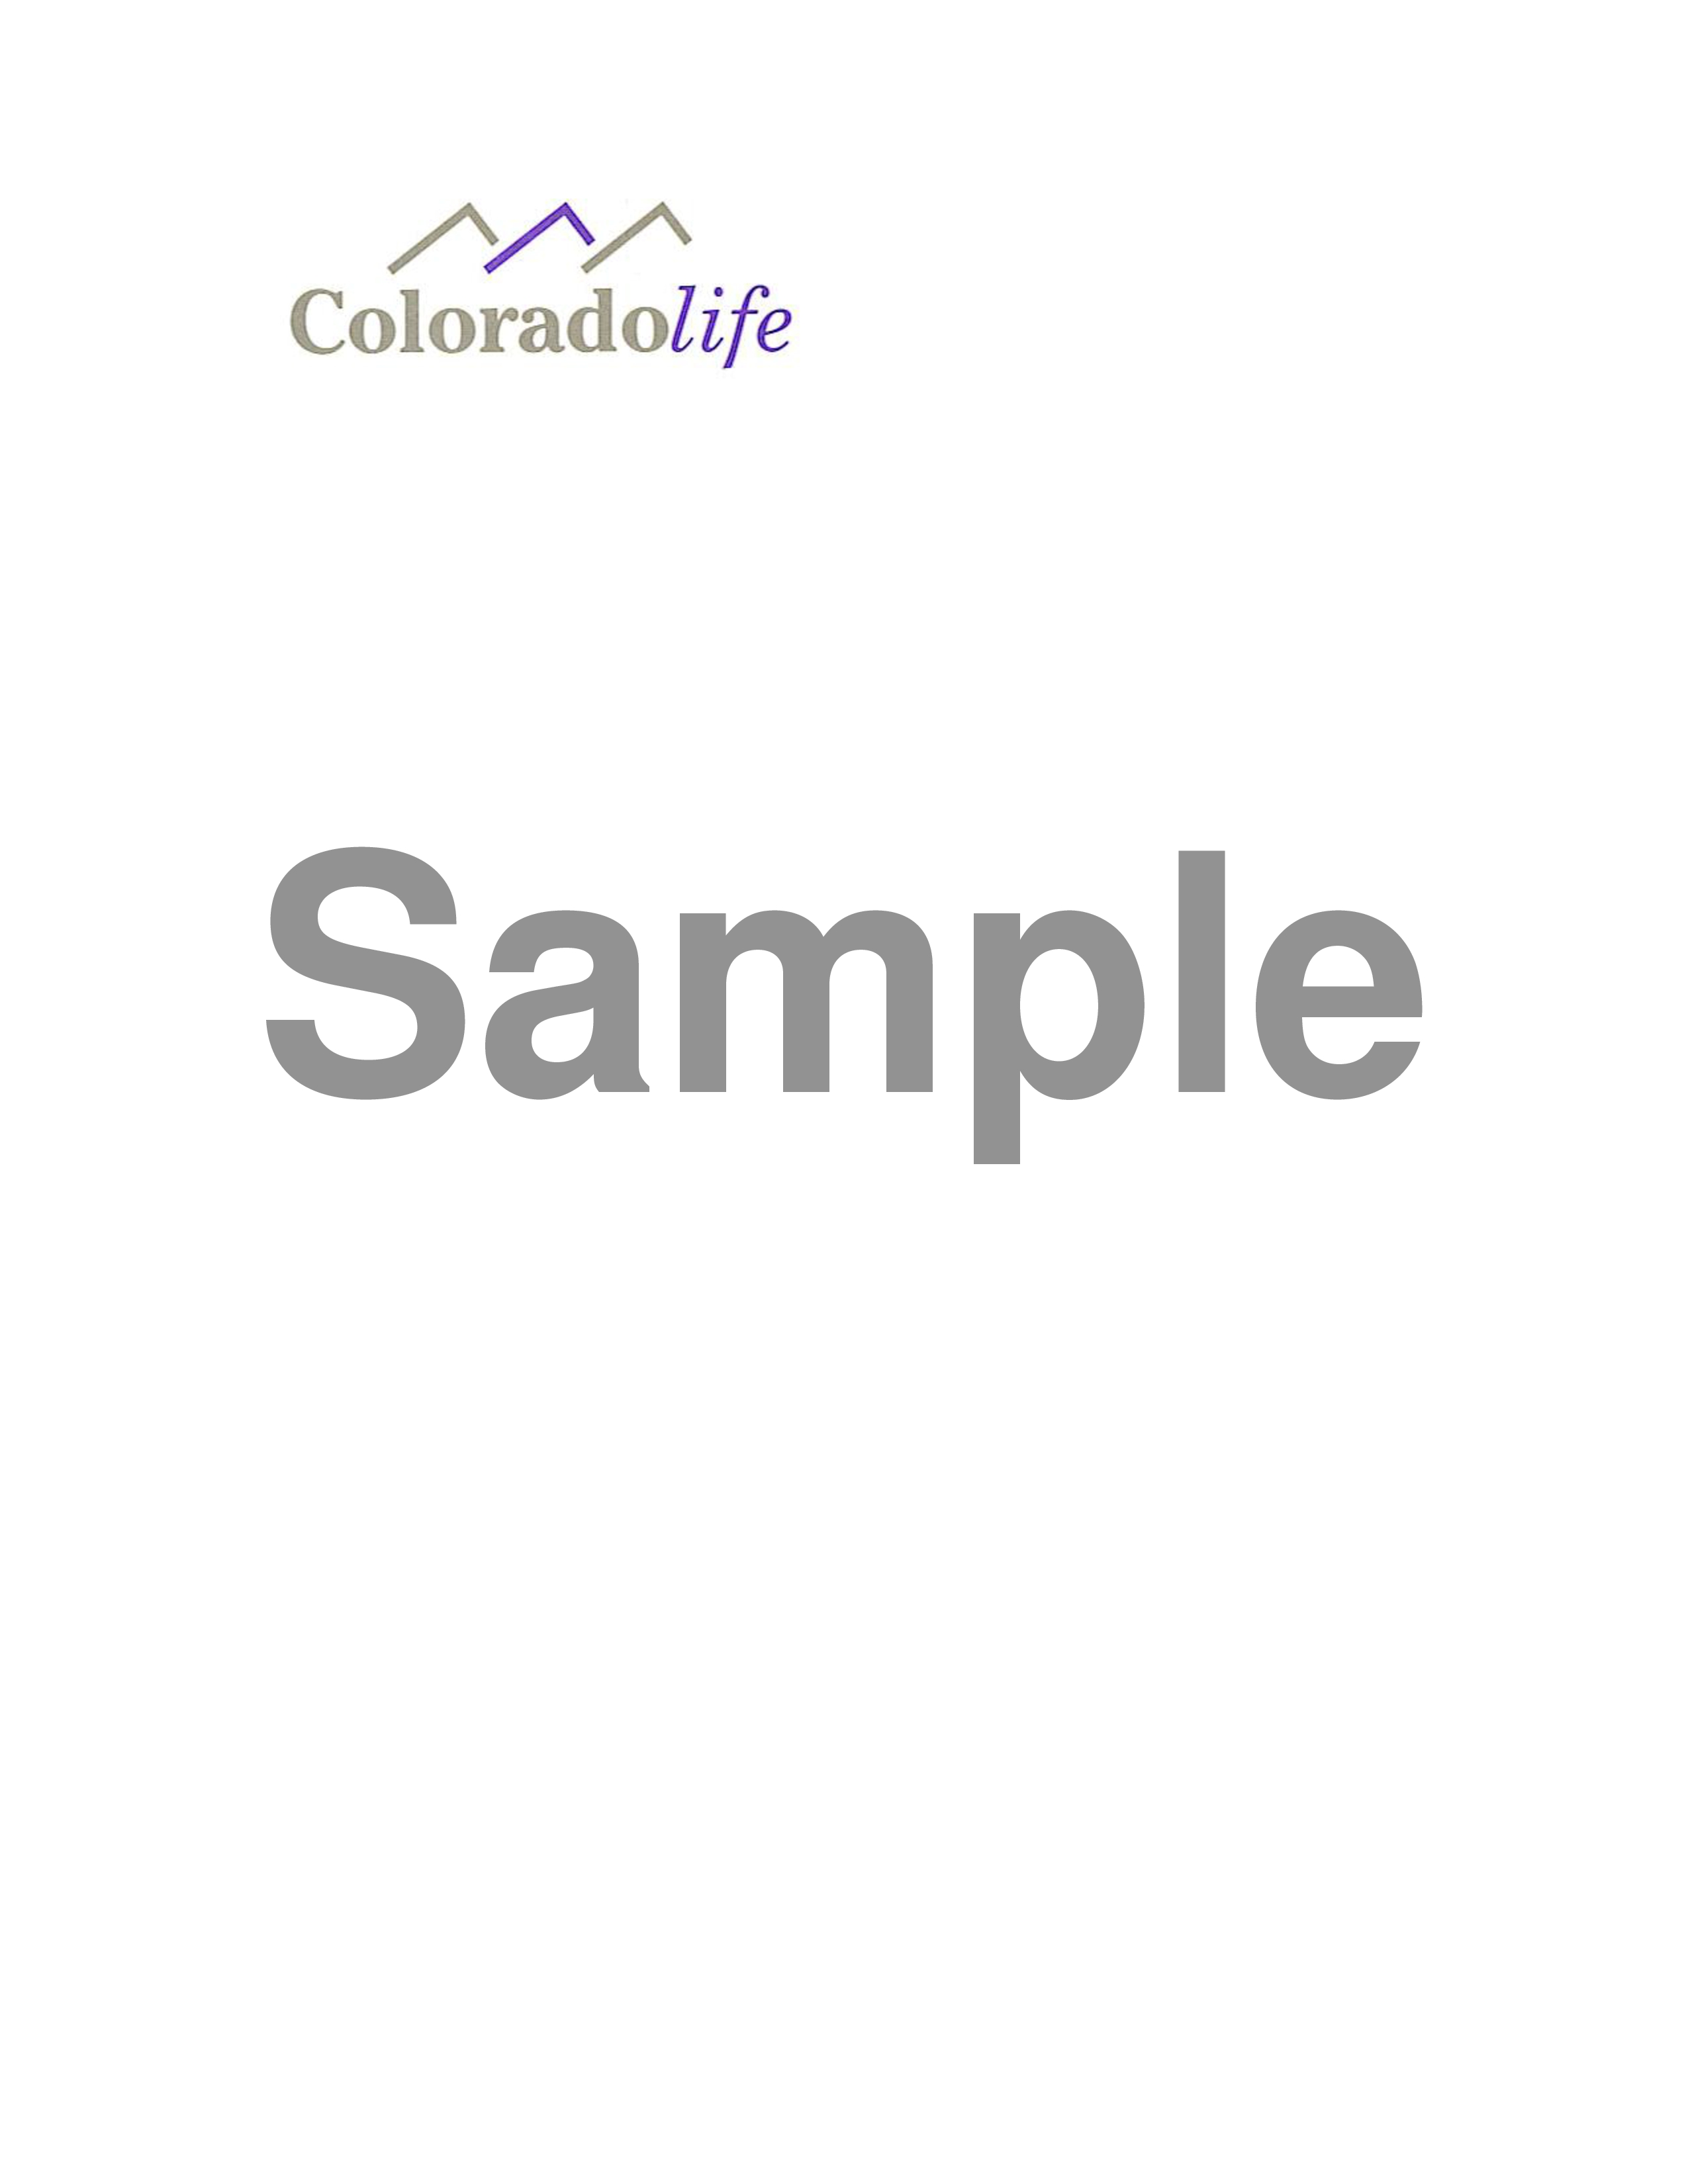 Colorado Long Term Care Partnership CE Classes